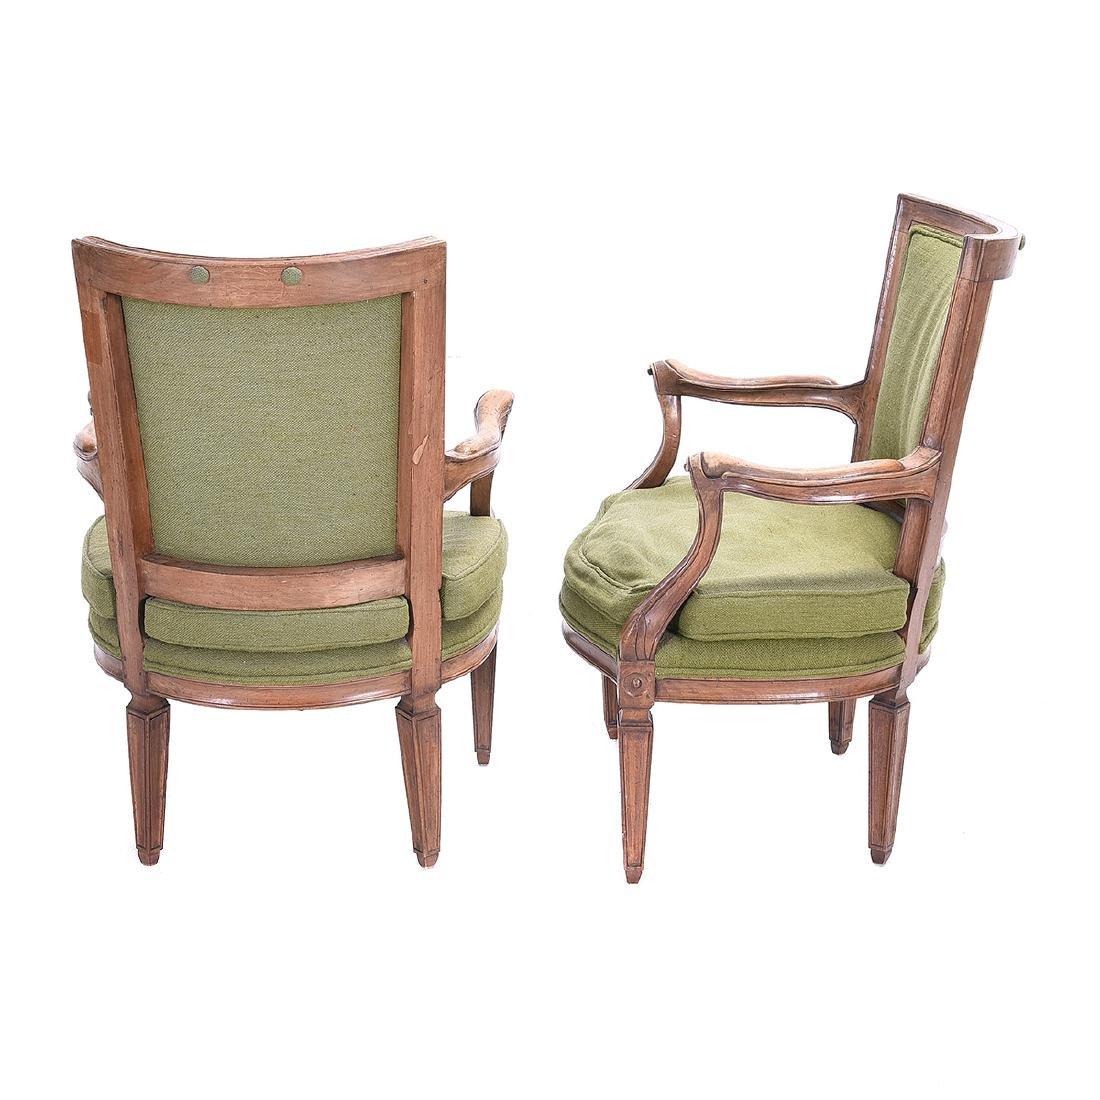 Pair French Provincial Walnut Fauteuils, with Green - 3